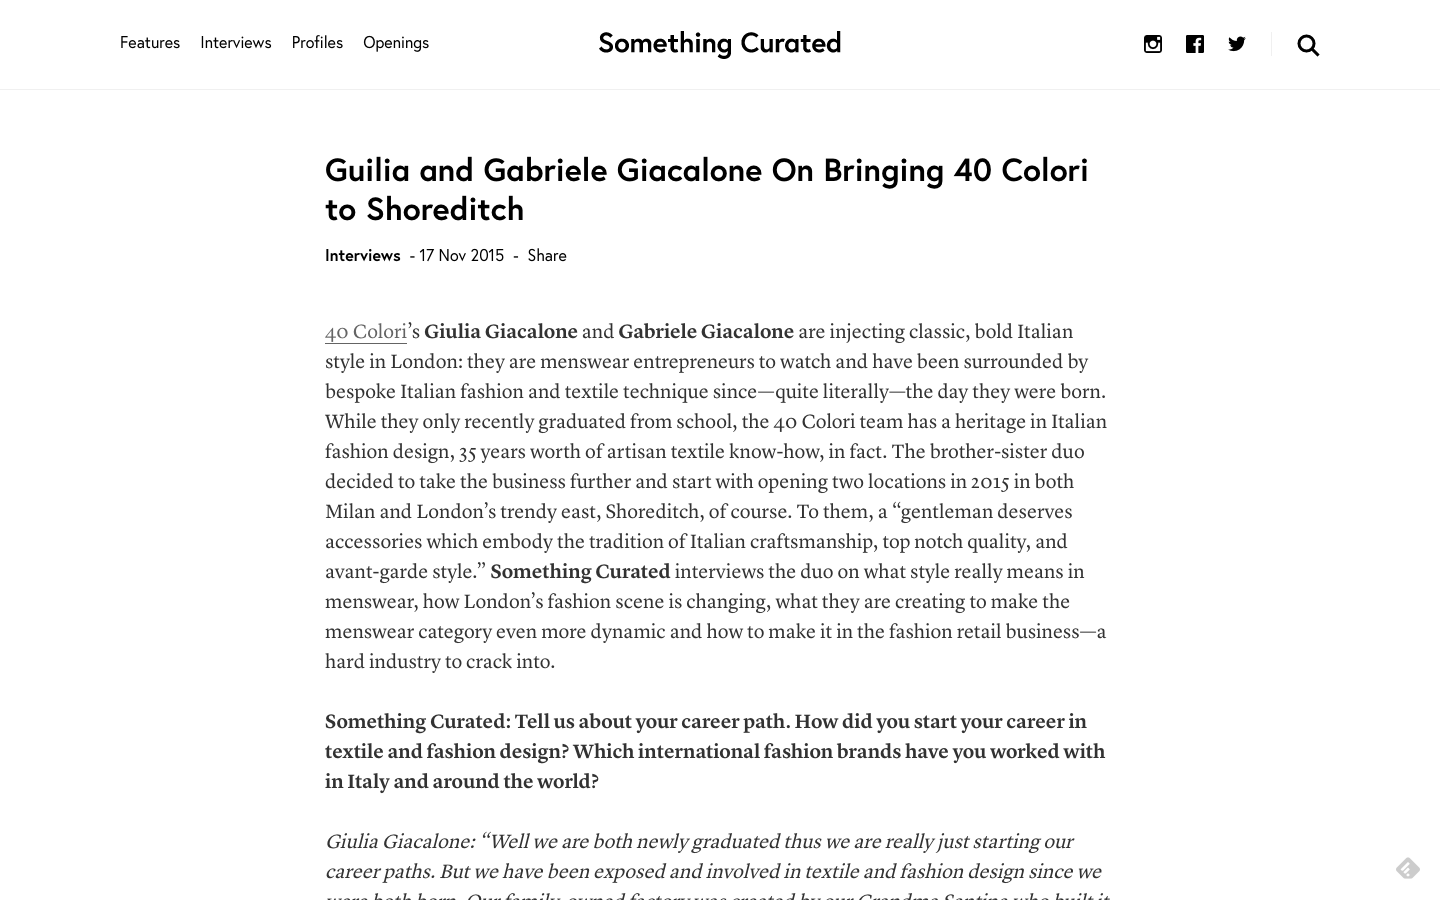 SOMETHING CURATED for 40 Colori